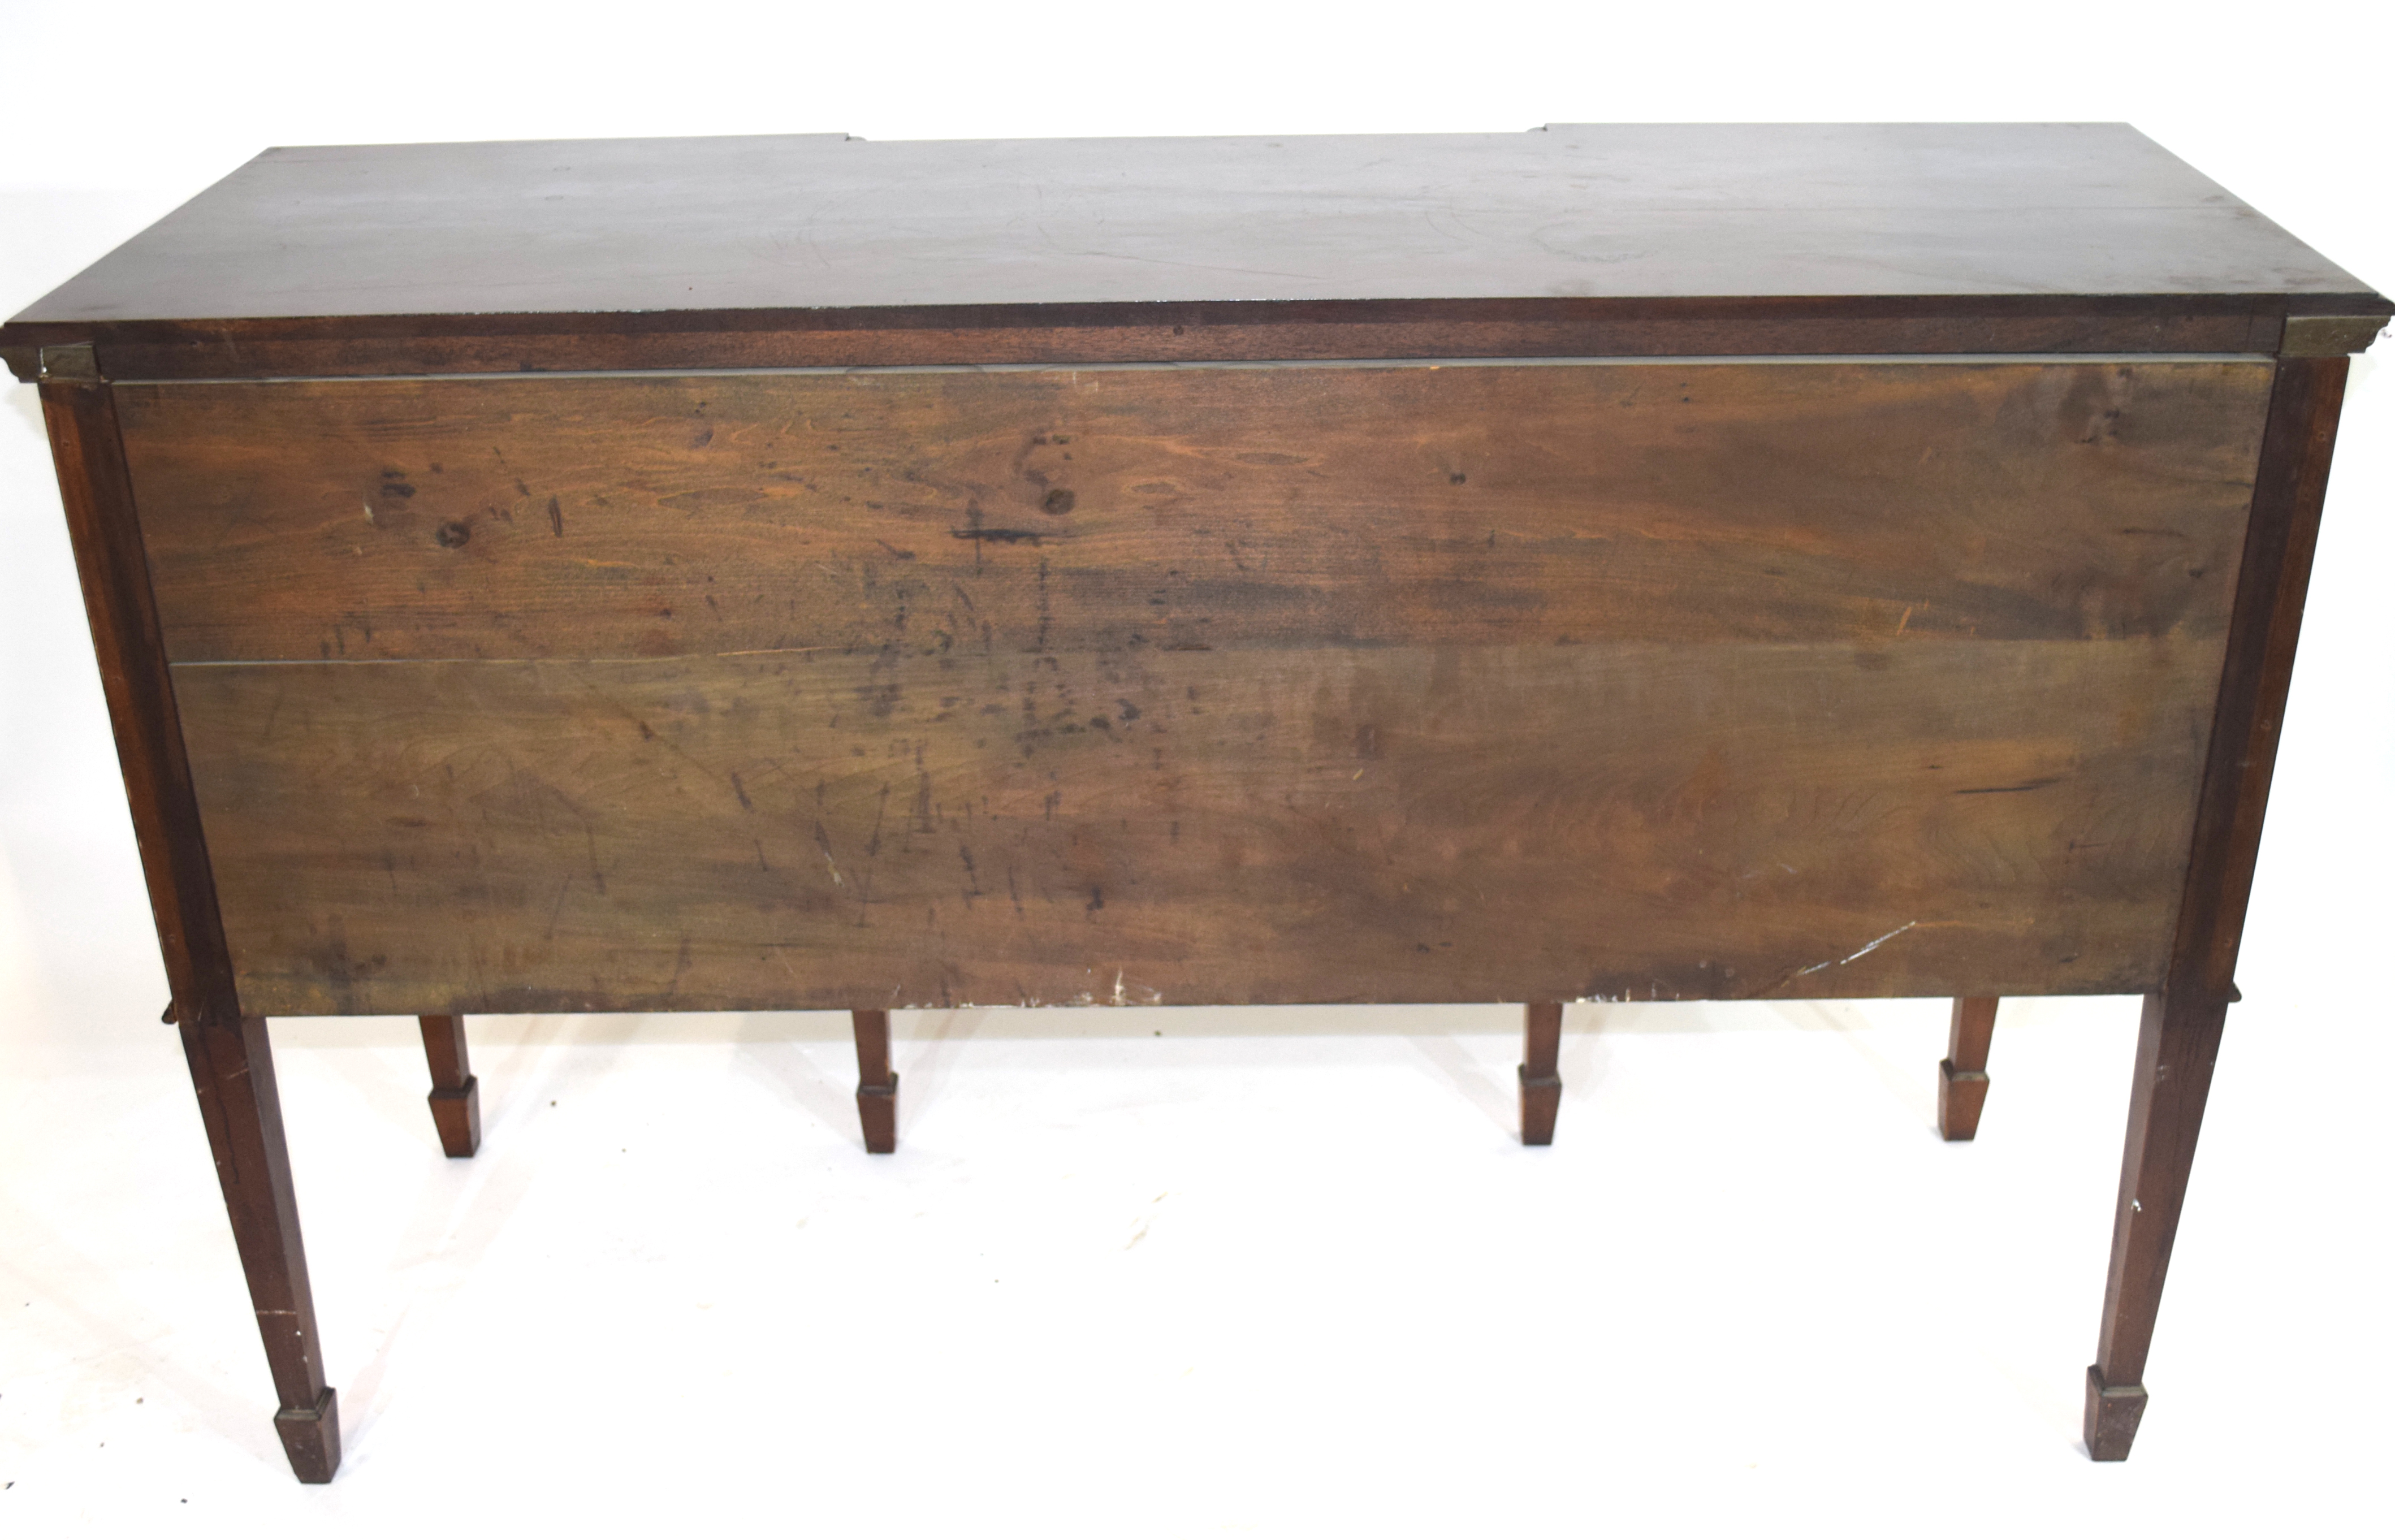 Edwardian mahogany sideboard with three drawers fitted with brass ringlet handles and two panelled - Image 4 of 4